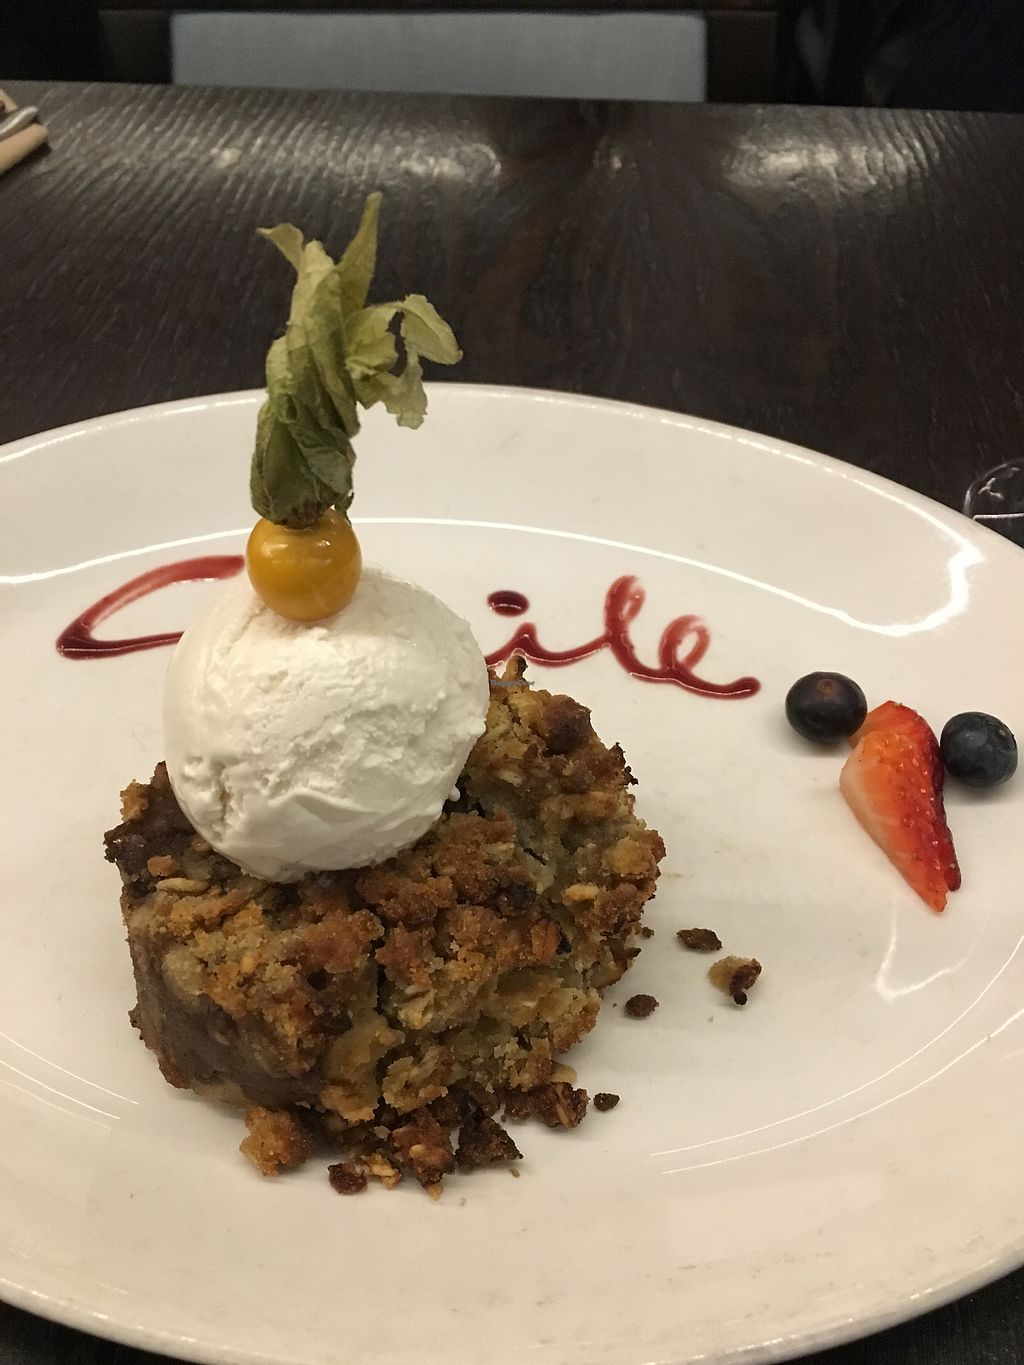 "Photo of 222 Vegan Cuisine  by <a href=""/members/profile/NatachaN%C3%B3brega"">NatachaNóbrega</a> <br/>Delicious apple crumble with vegan vanilla ice cream  <br/> March 31, 2018  - <a href='/contact/abuse/image/4655/379054'>Report</a>"